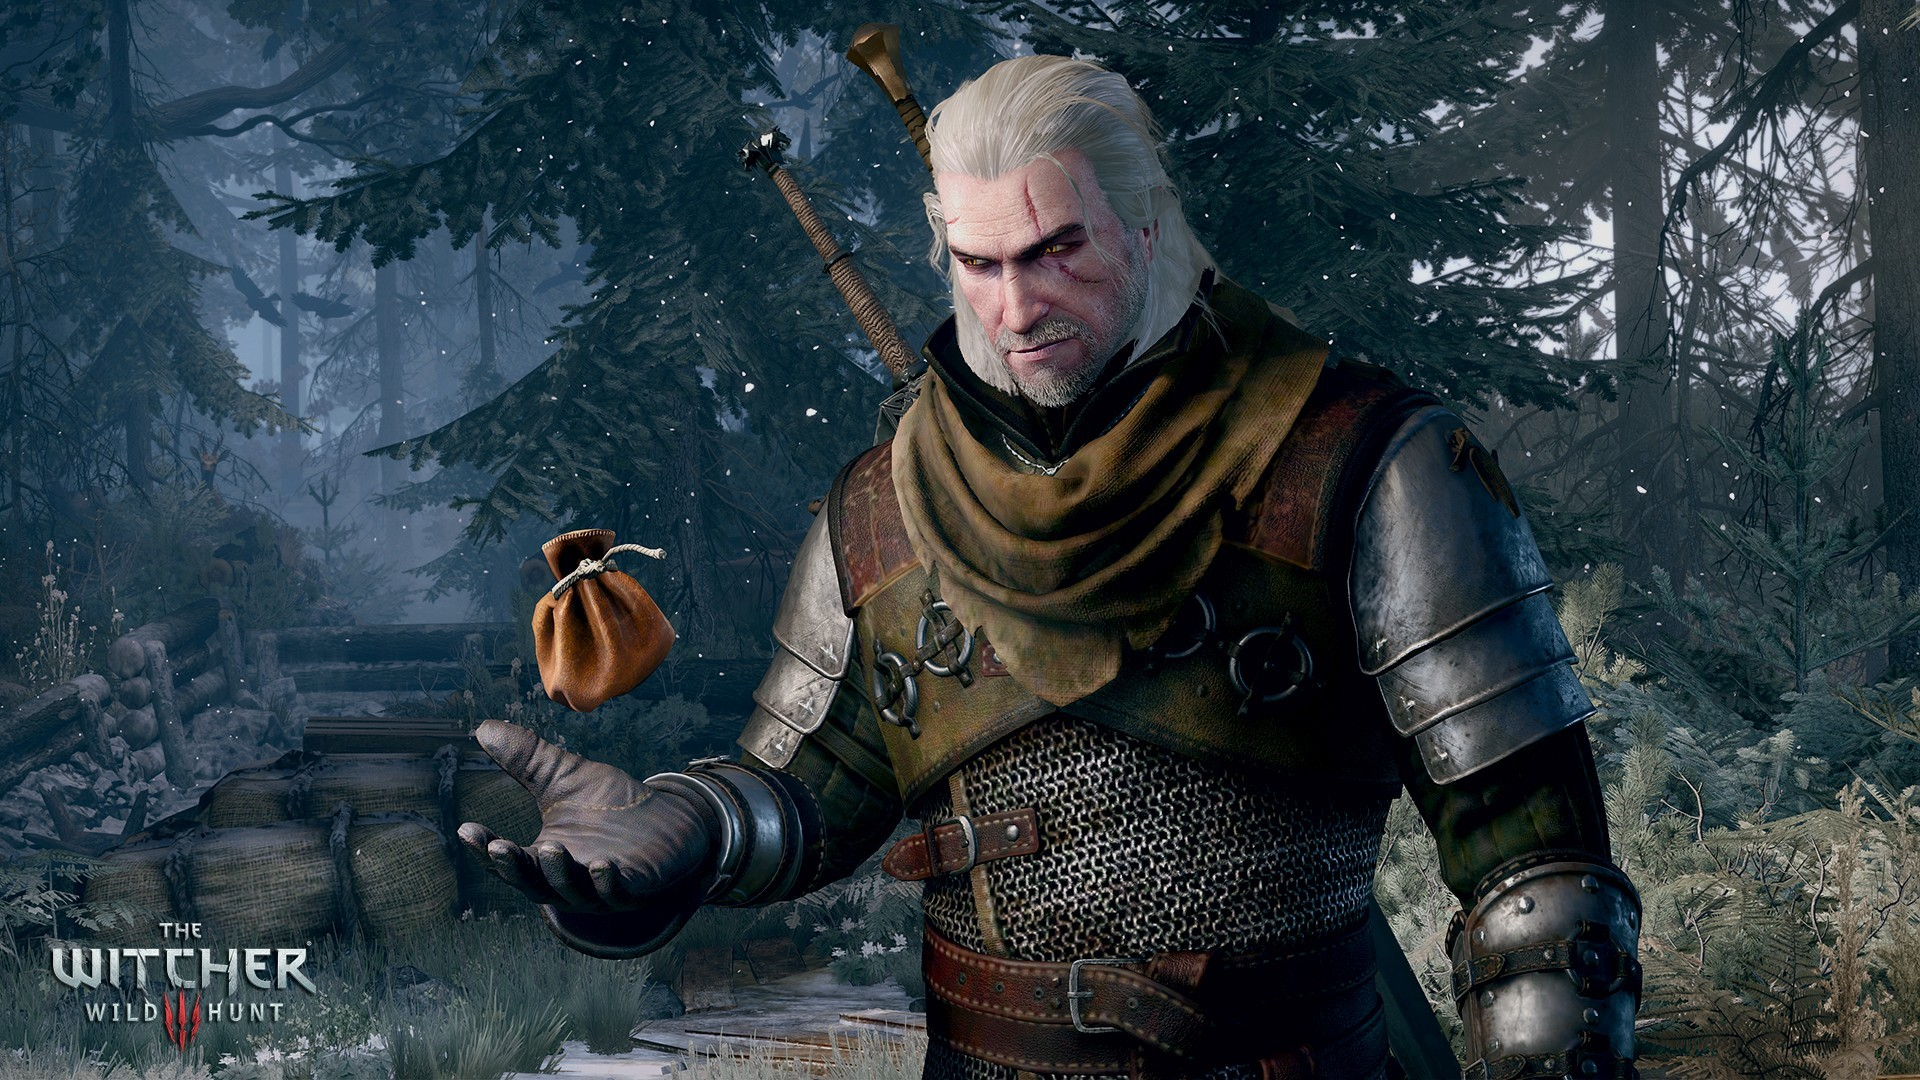 The Witcher 3 and GoG are driving CD Projekt RED's big profits